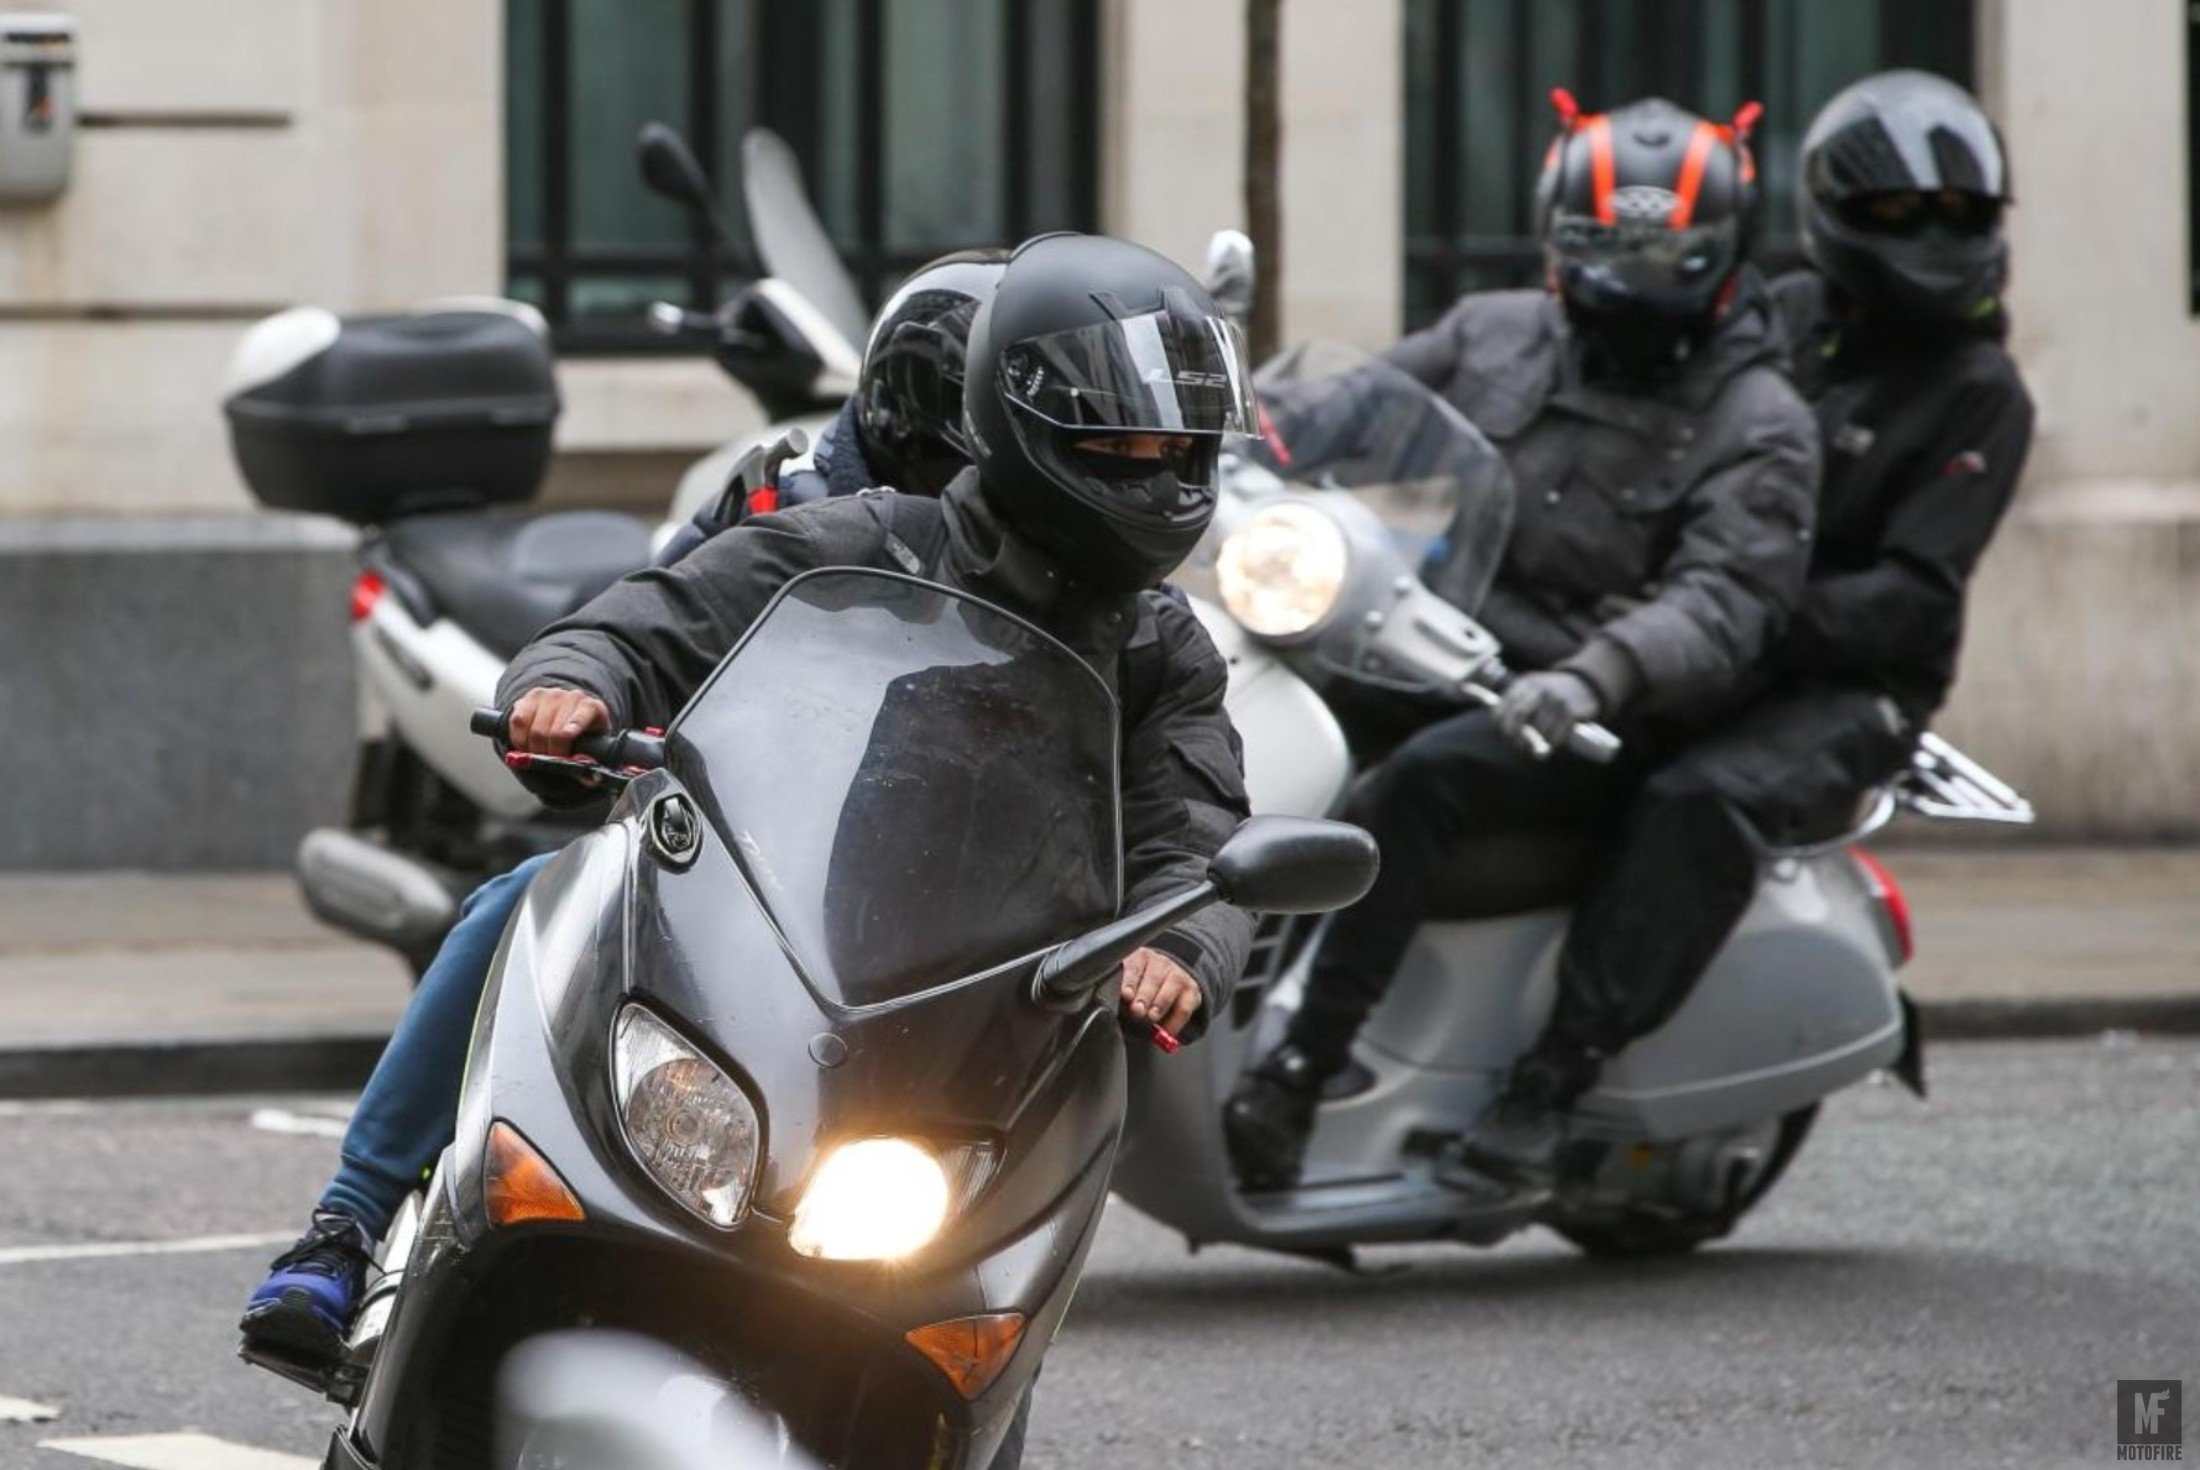 Worrying rise in moped crime in Sutton